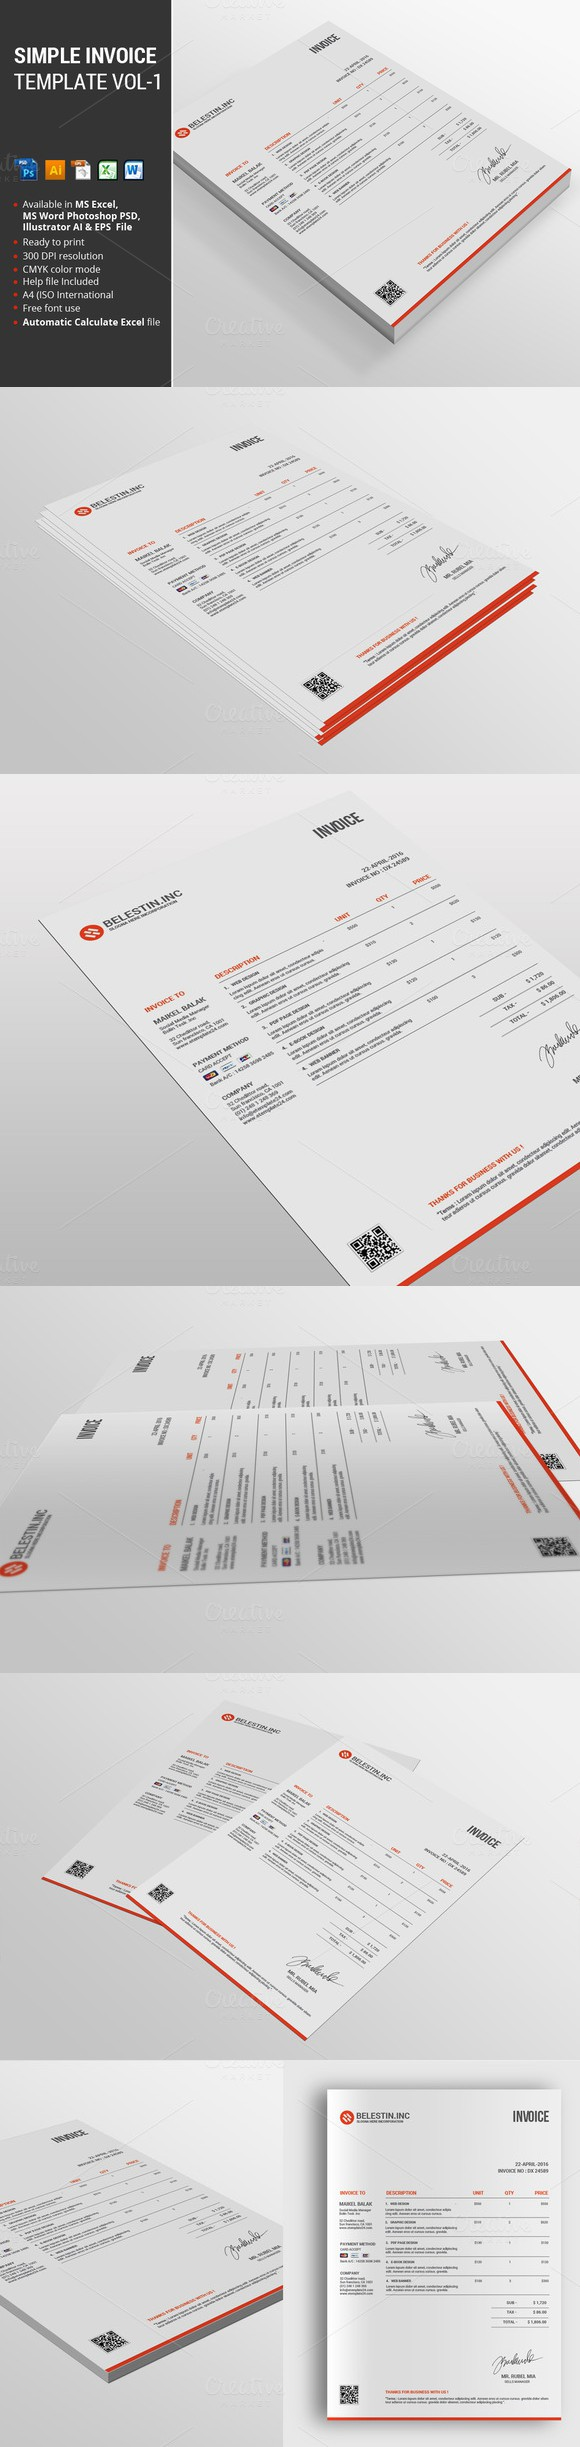 simple invoice template vol invoice template stationery simple invoice template vol 1